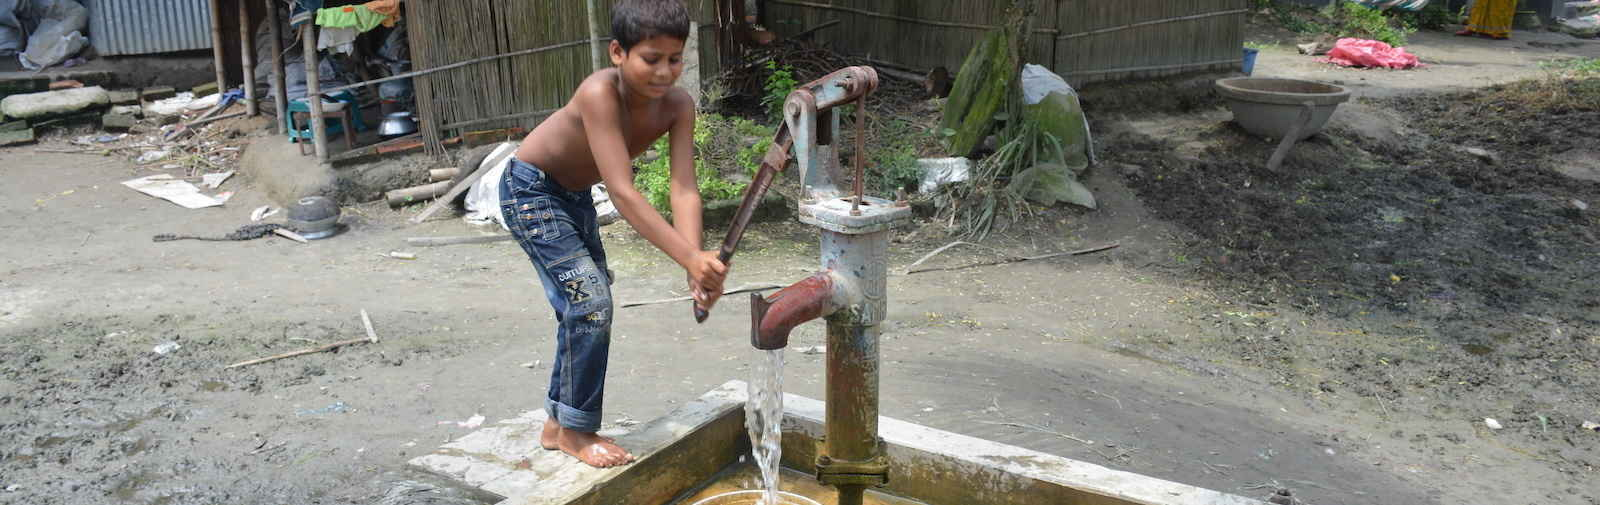 Clean and accessible water saves lives image